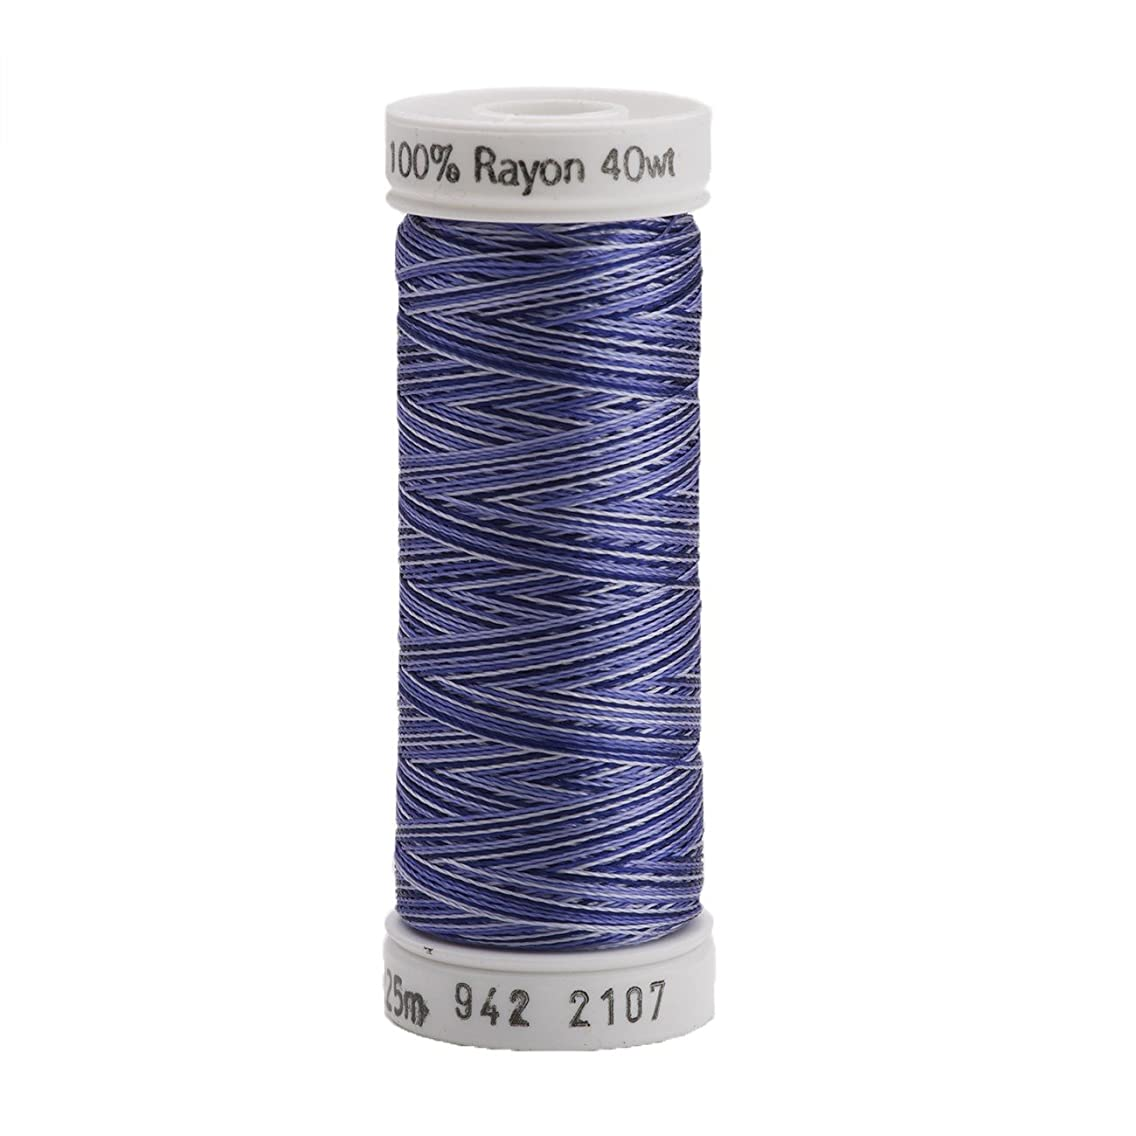 Sulky 942-2107 Rayon Thread for Sewing, 250-Yard, Vari Navy Blue